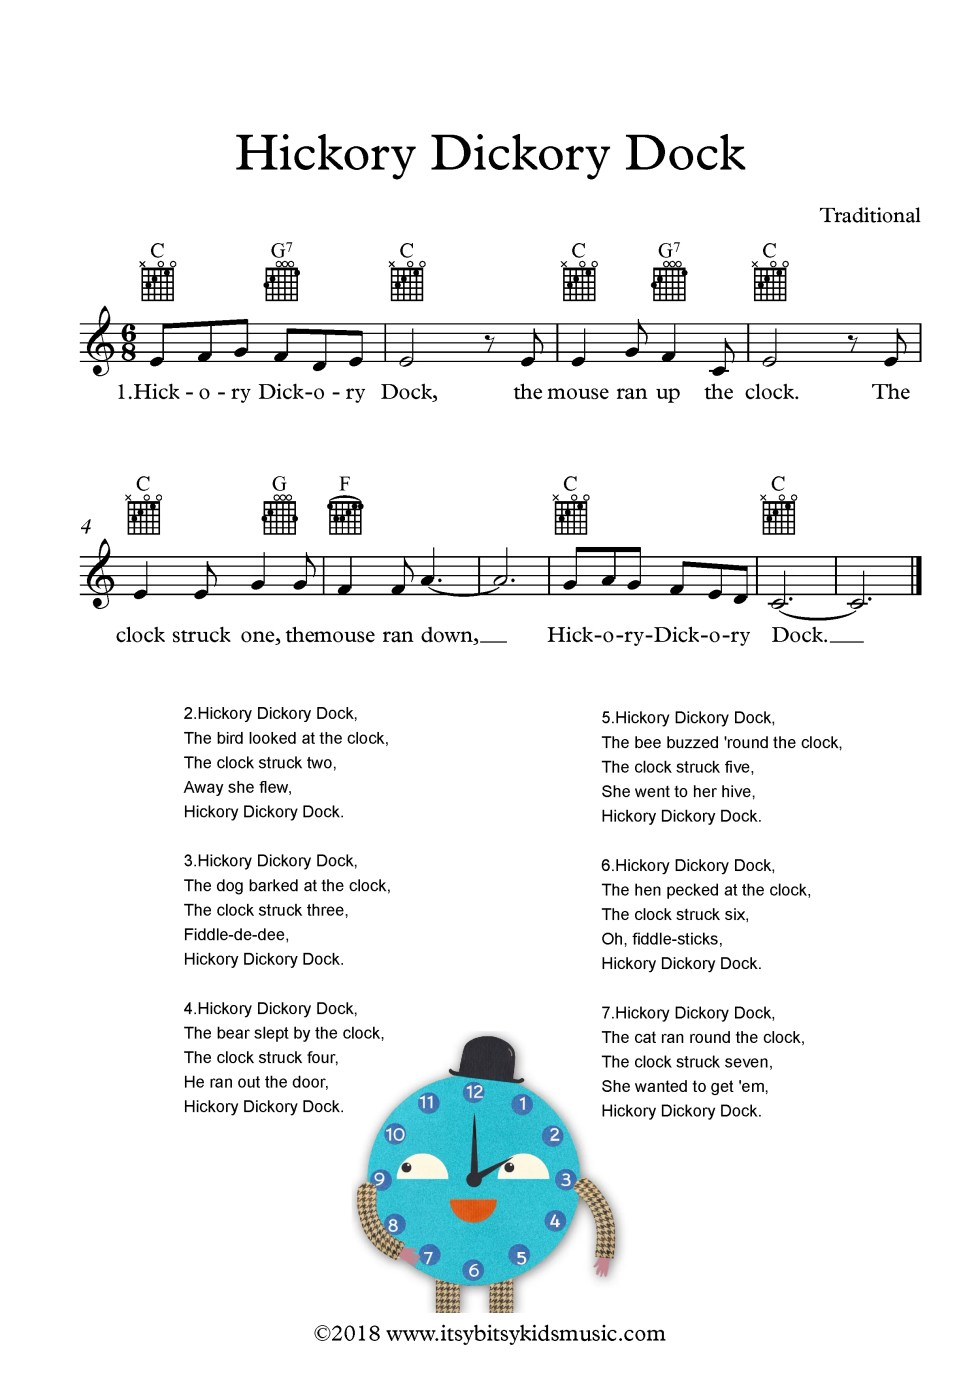 Hickory Dickory Dock Sheet Music With Chords And Lyrics